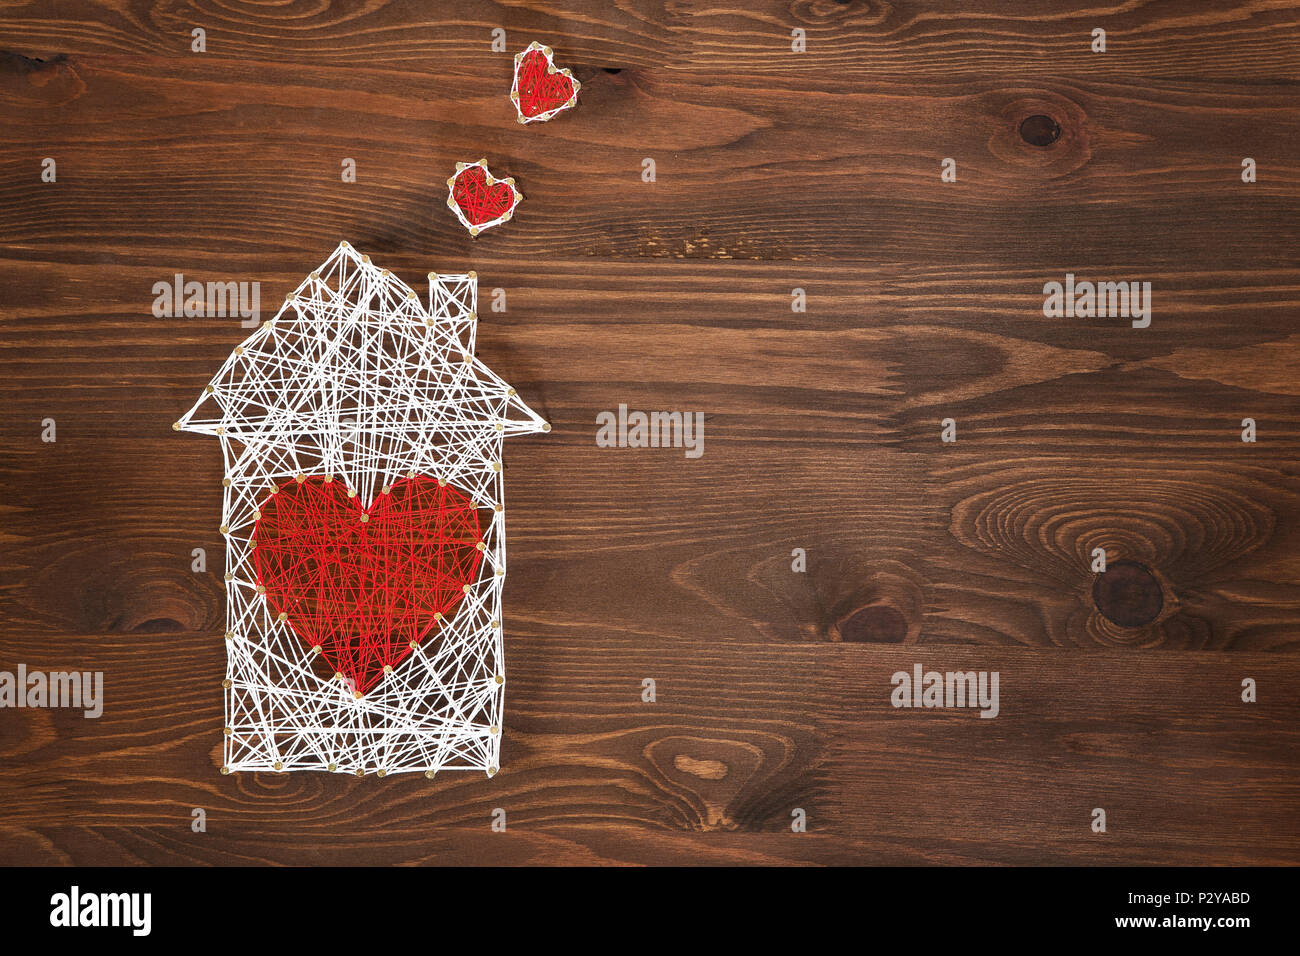 Home sweet home. Handmade home symbol with heart shape on wooden background with copy space - Stock Image